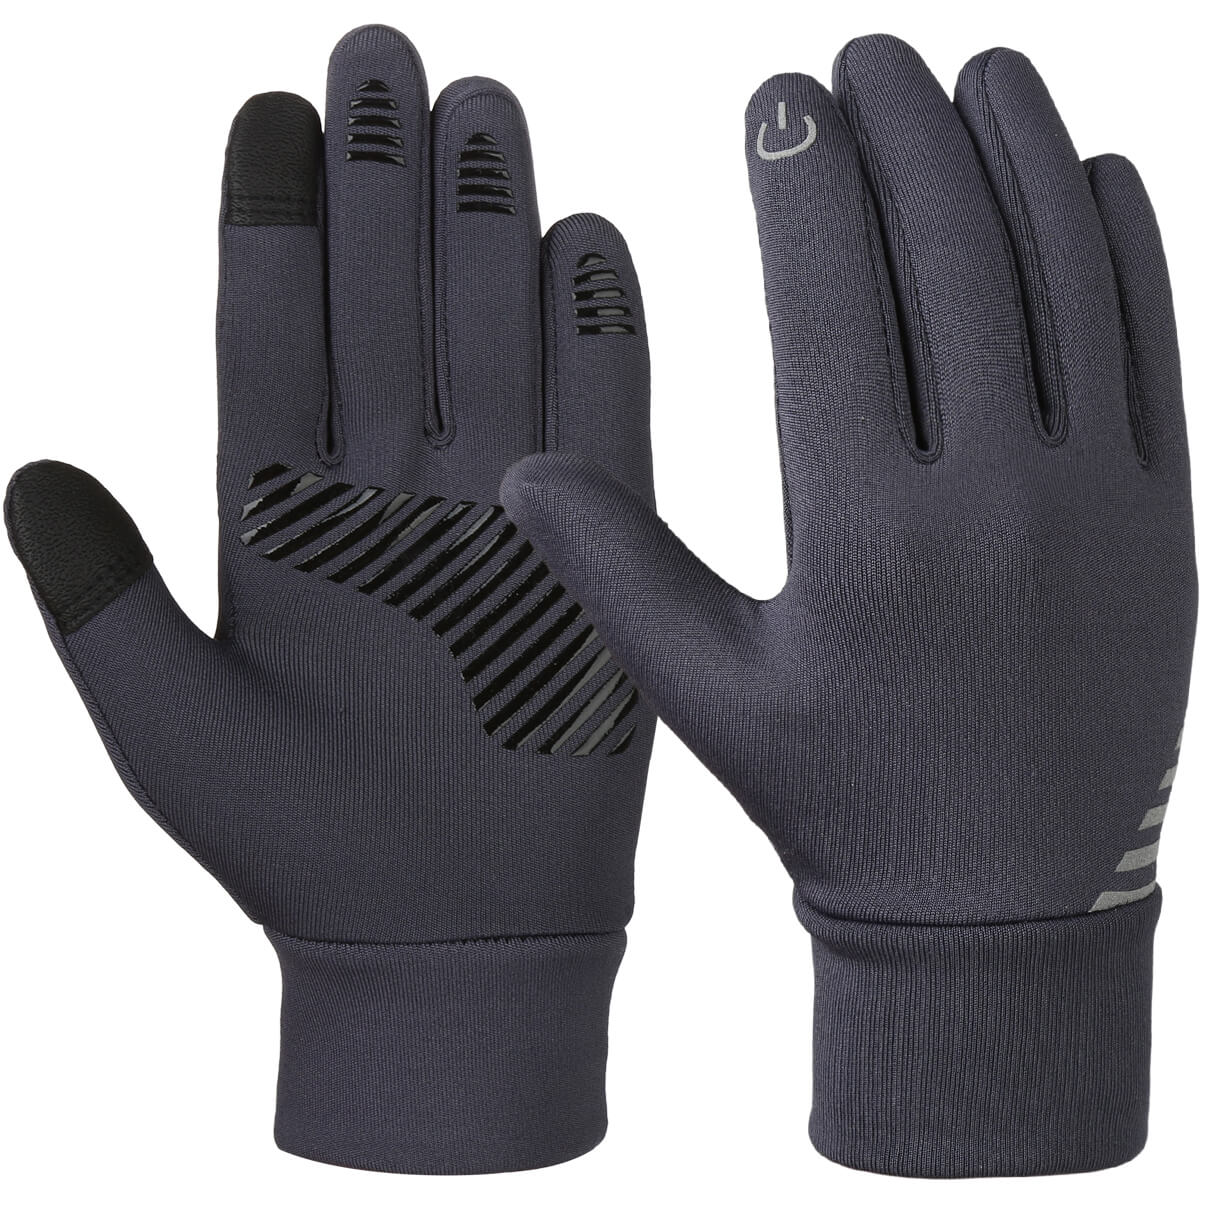 Things You Must Know Before Buying Winer Gloves